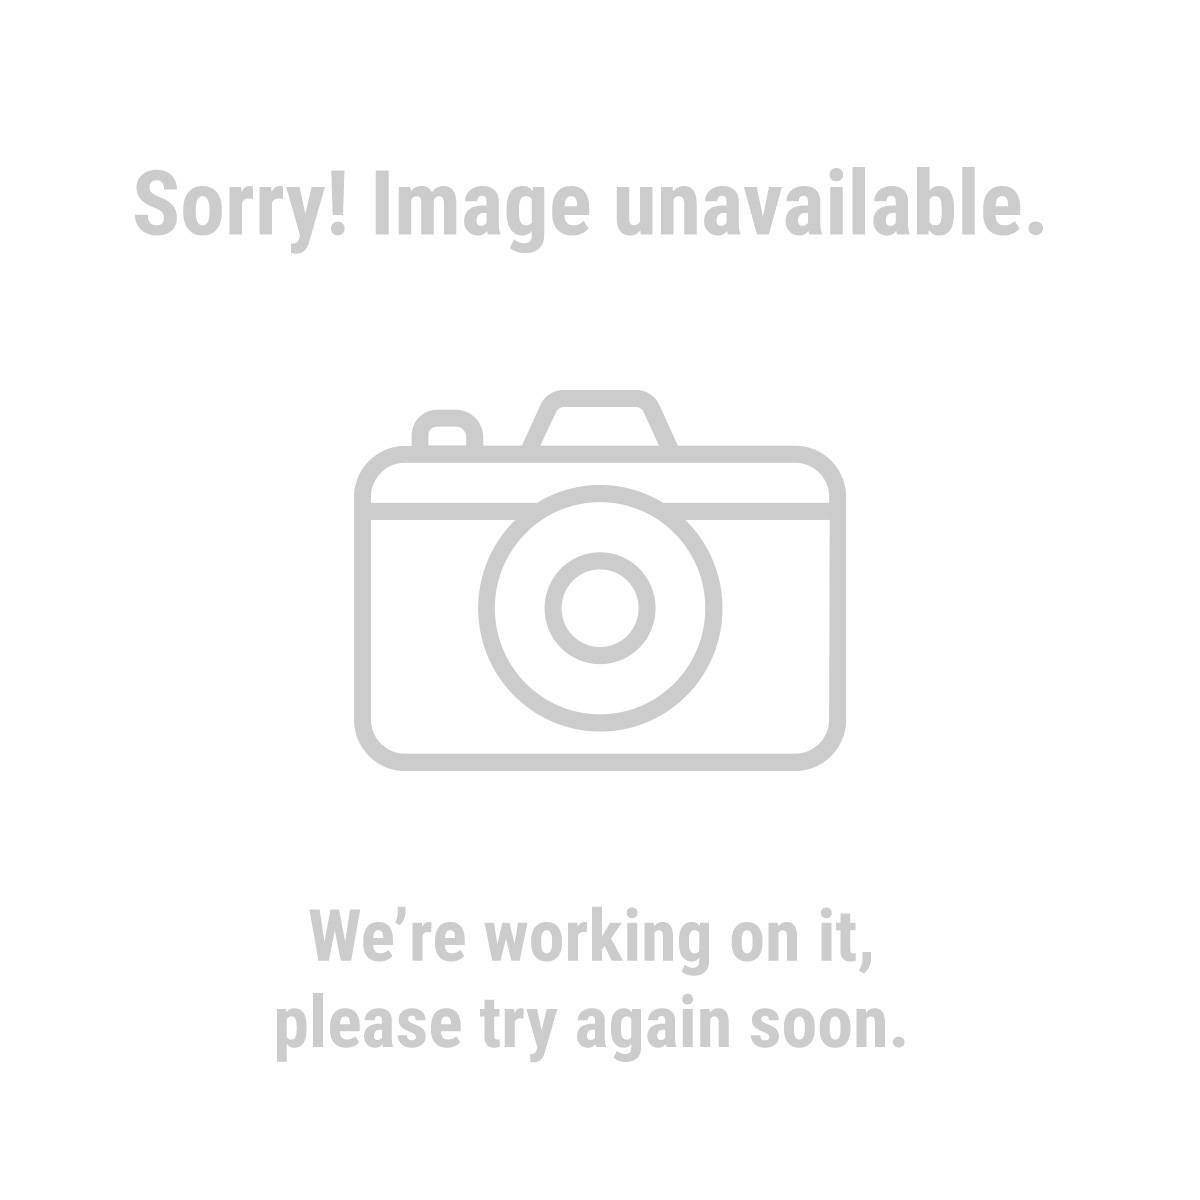 Haul-Master 67287 1250 Lb. Capacity Mechanical Wheel Dolly